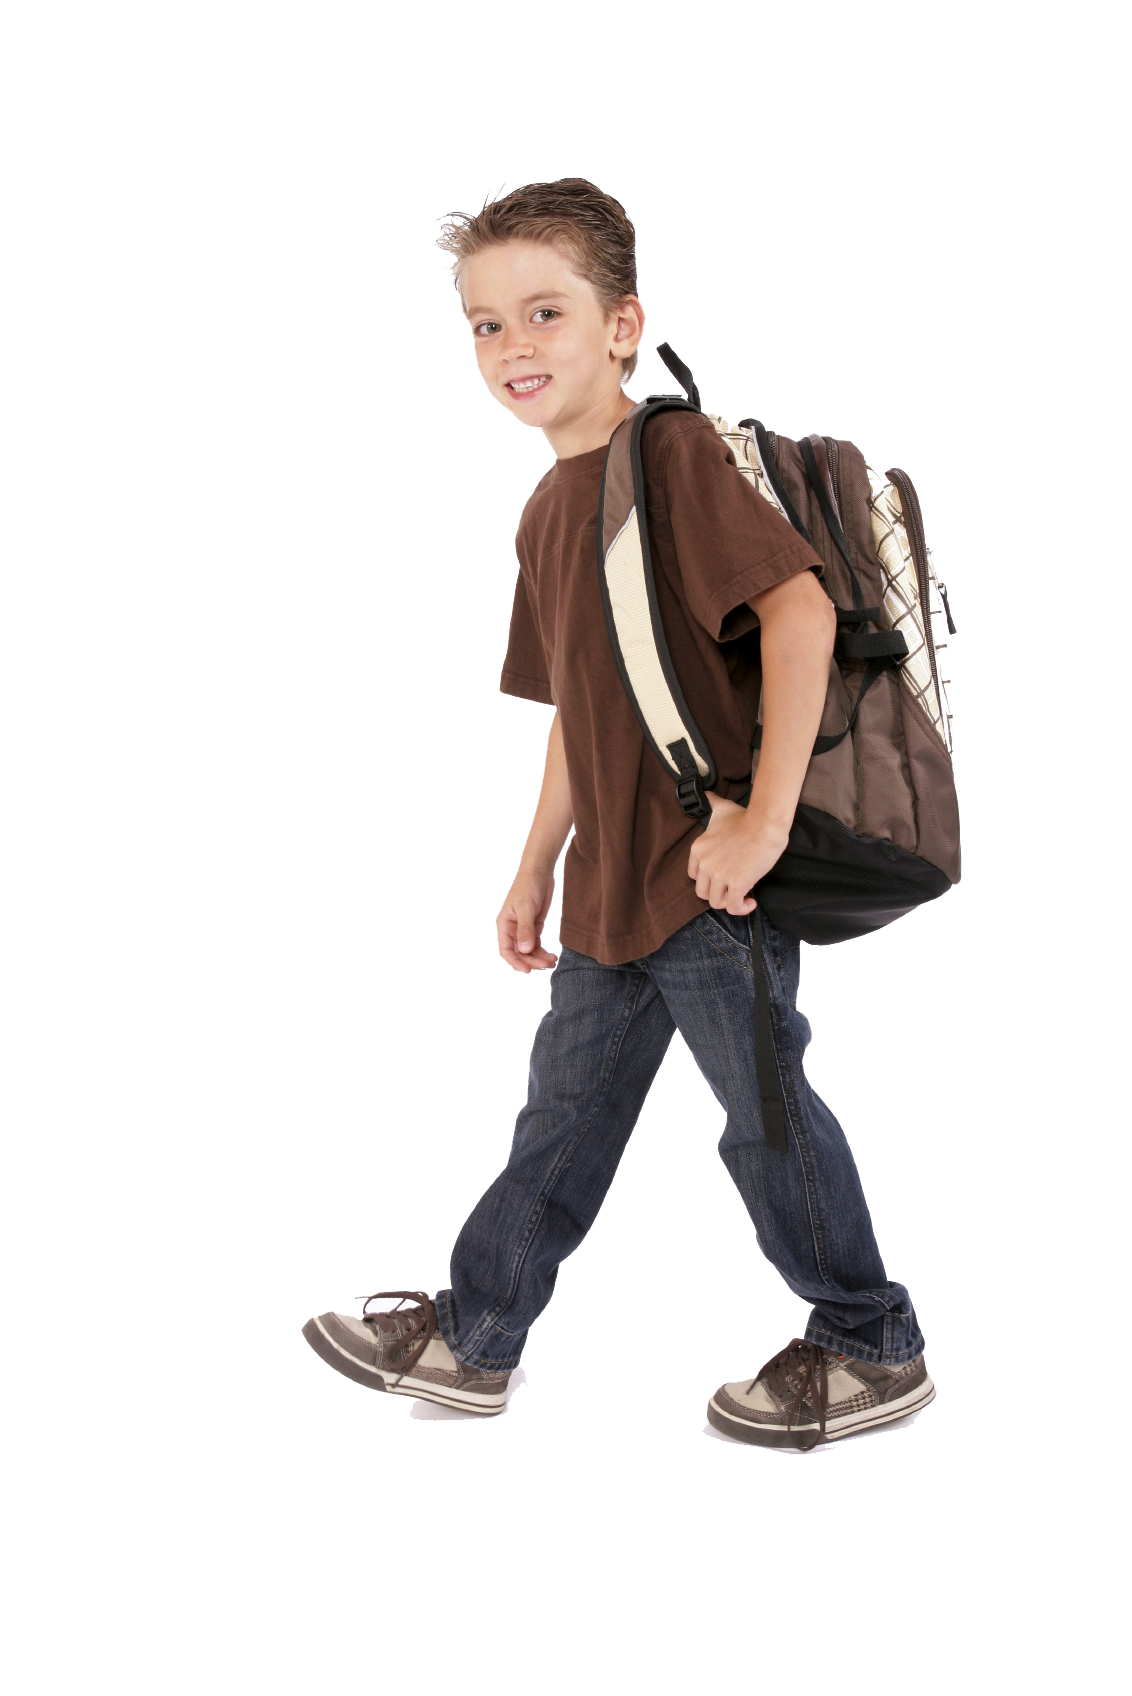 Young boy png. Backpack ged